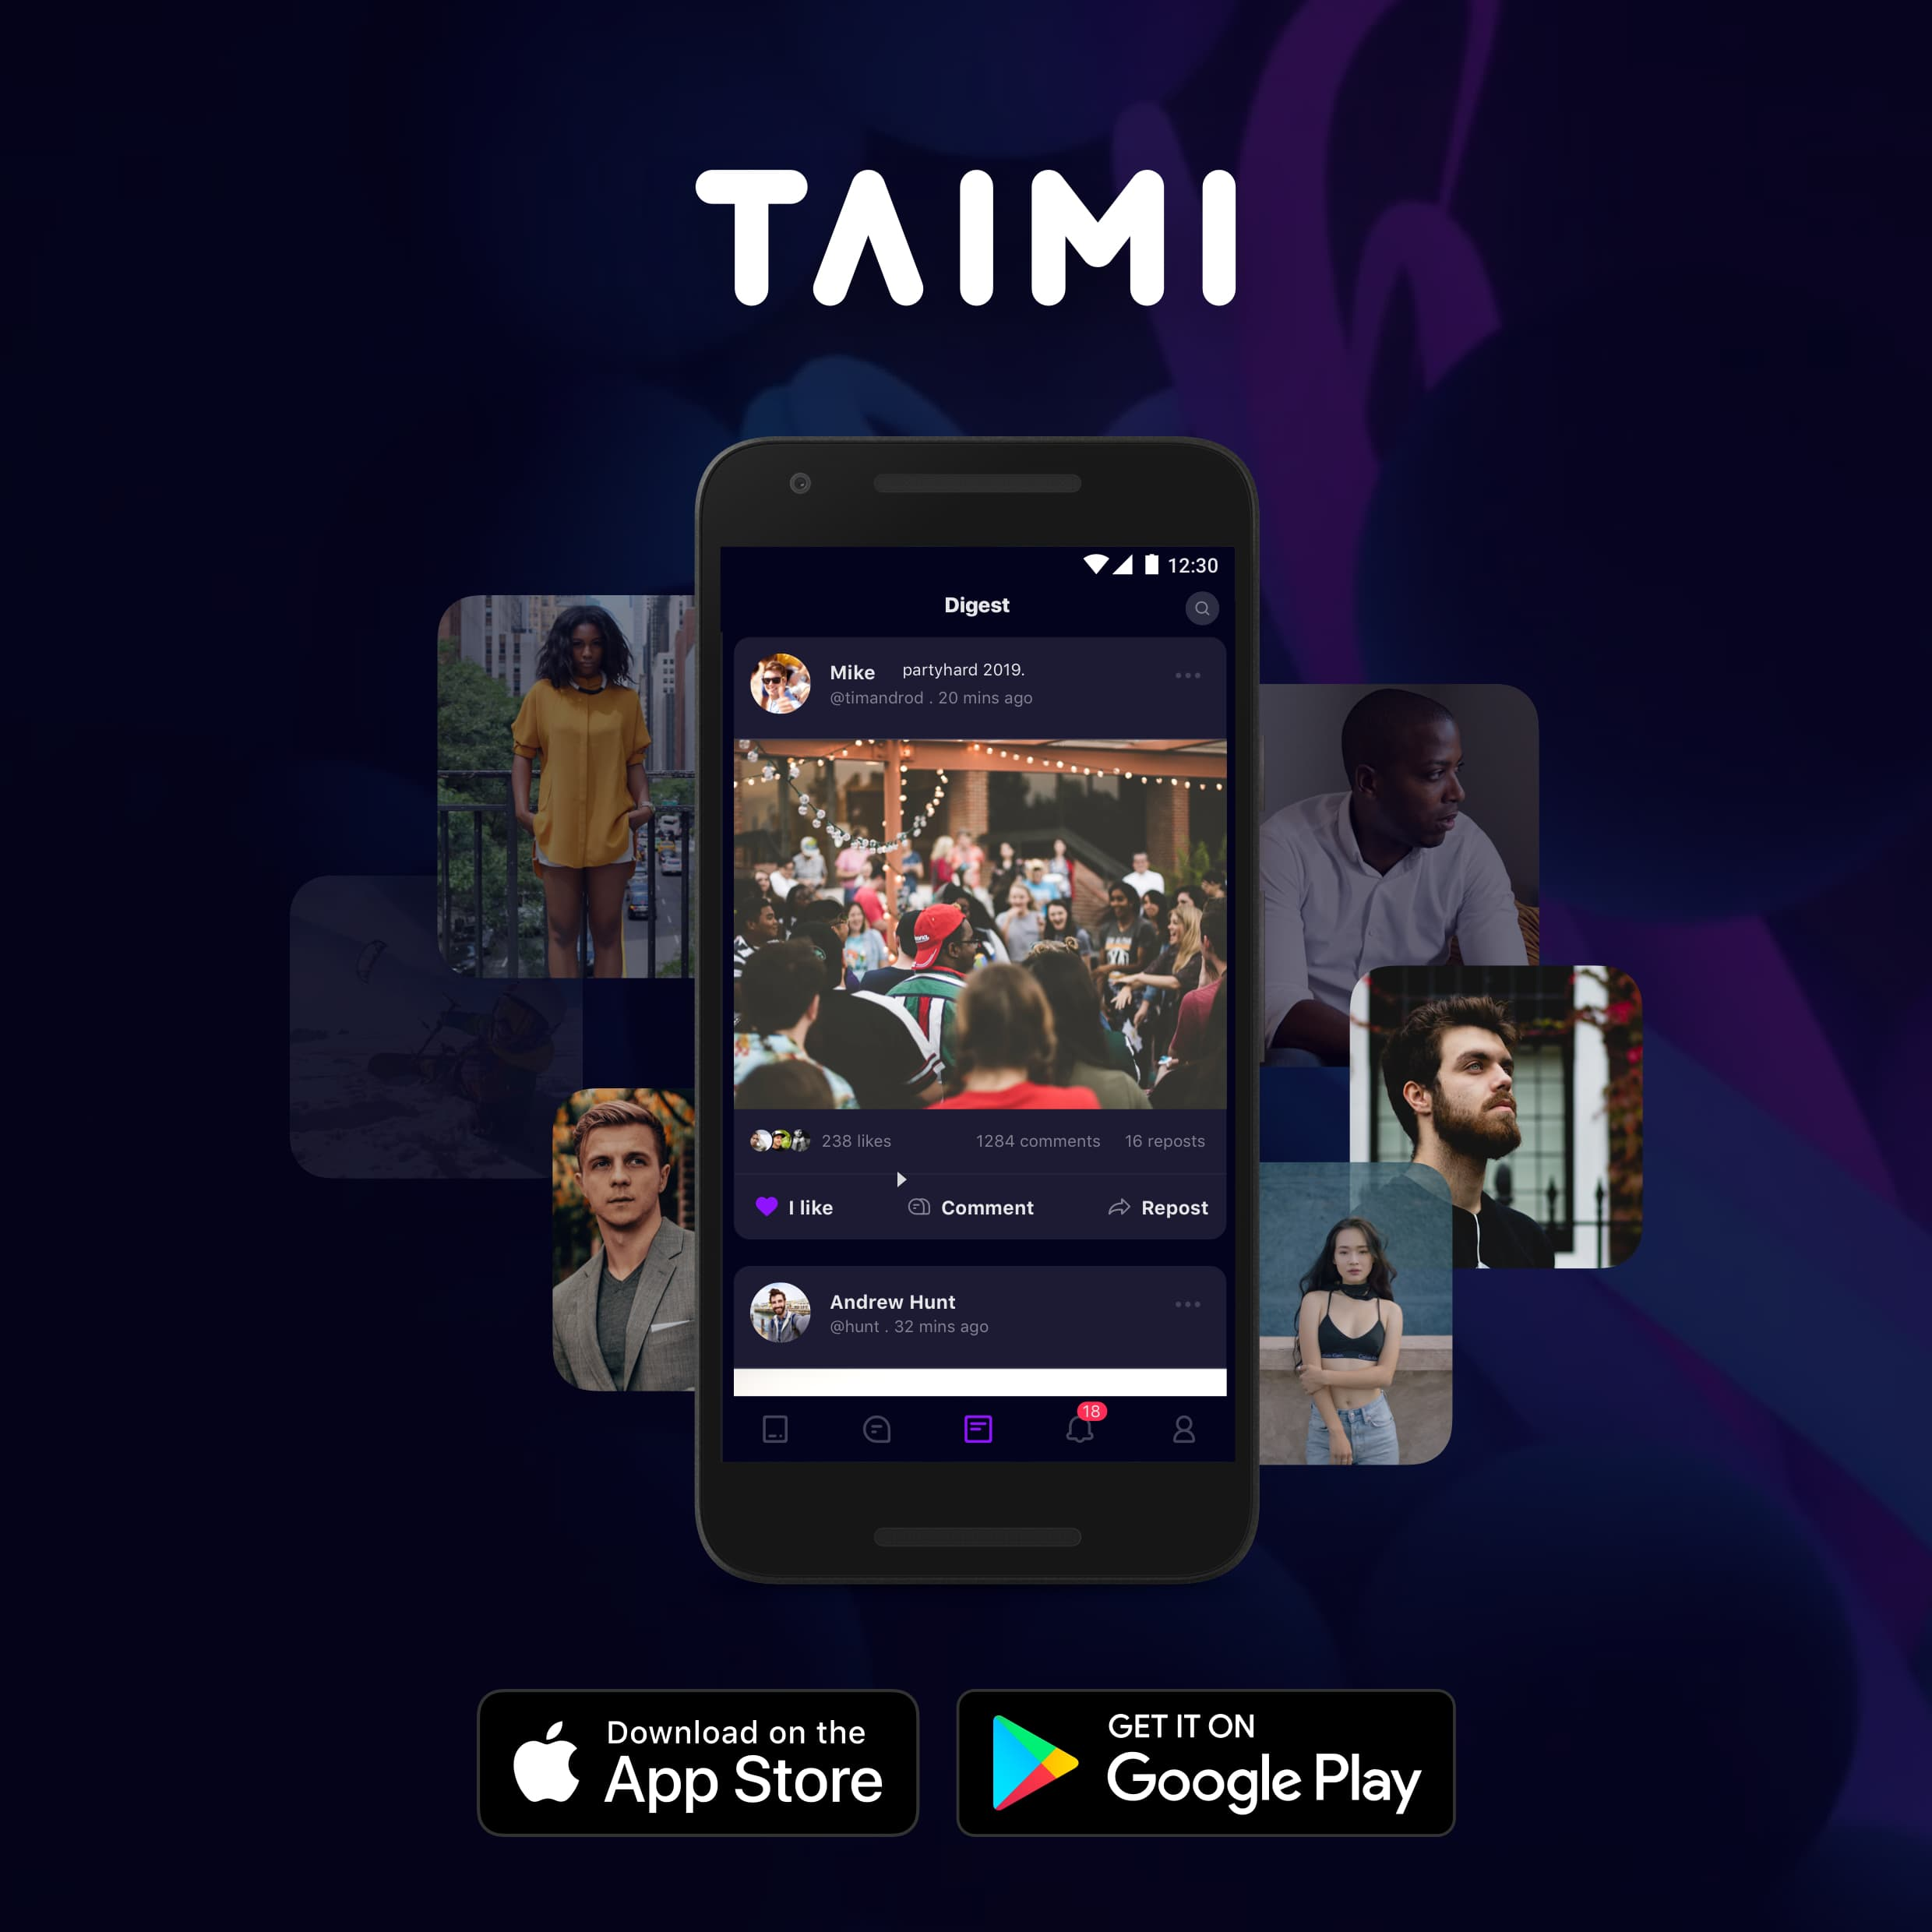 TAIMI - LGBTQI+ SOCIAL NETWORK AND DATING APP IS SEEKING AMBASSADORS AND PARTNERS TO PROMOTE ITS SOCIAL MISSION ACROSS THE GLOBE